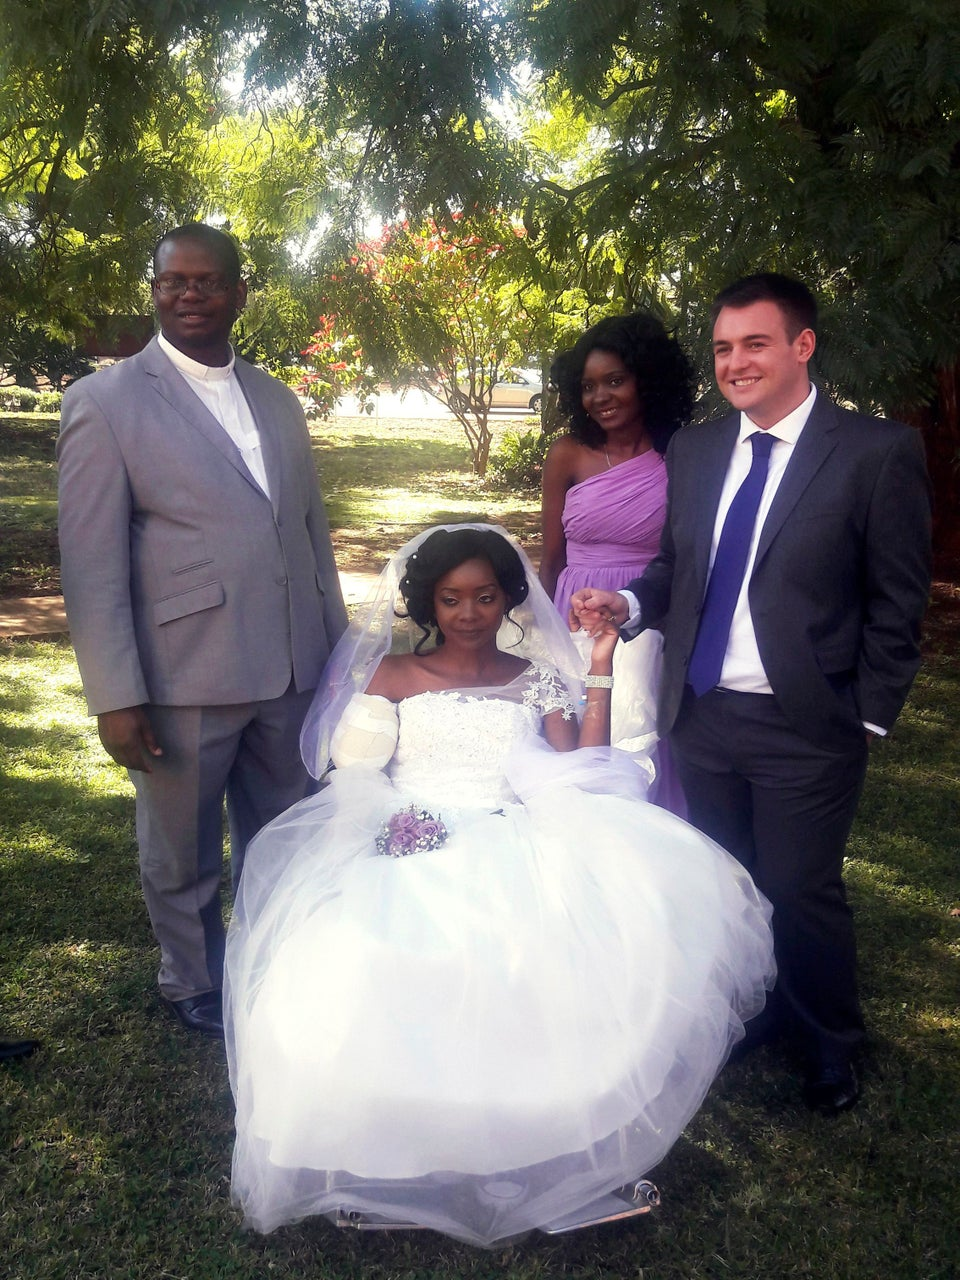 Whoa, This Bride Had Her Arm Mauled Off By A Crocodile Days Before Her Wedding…And She Still Got Married